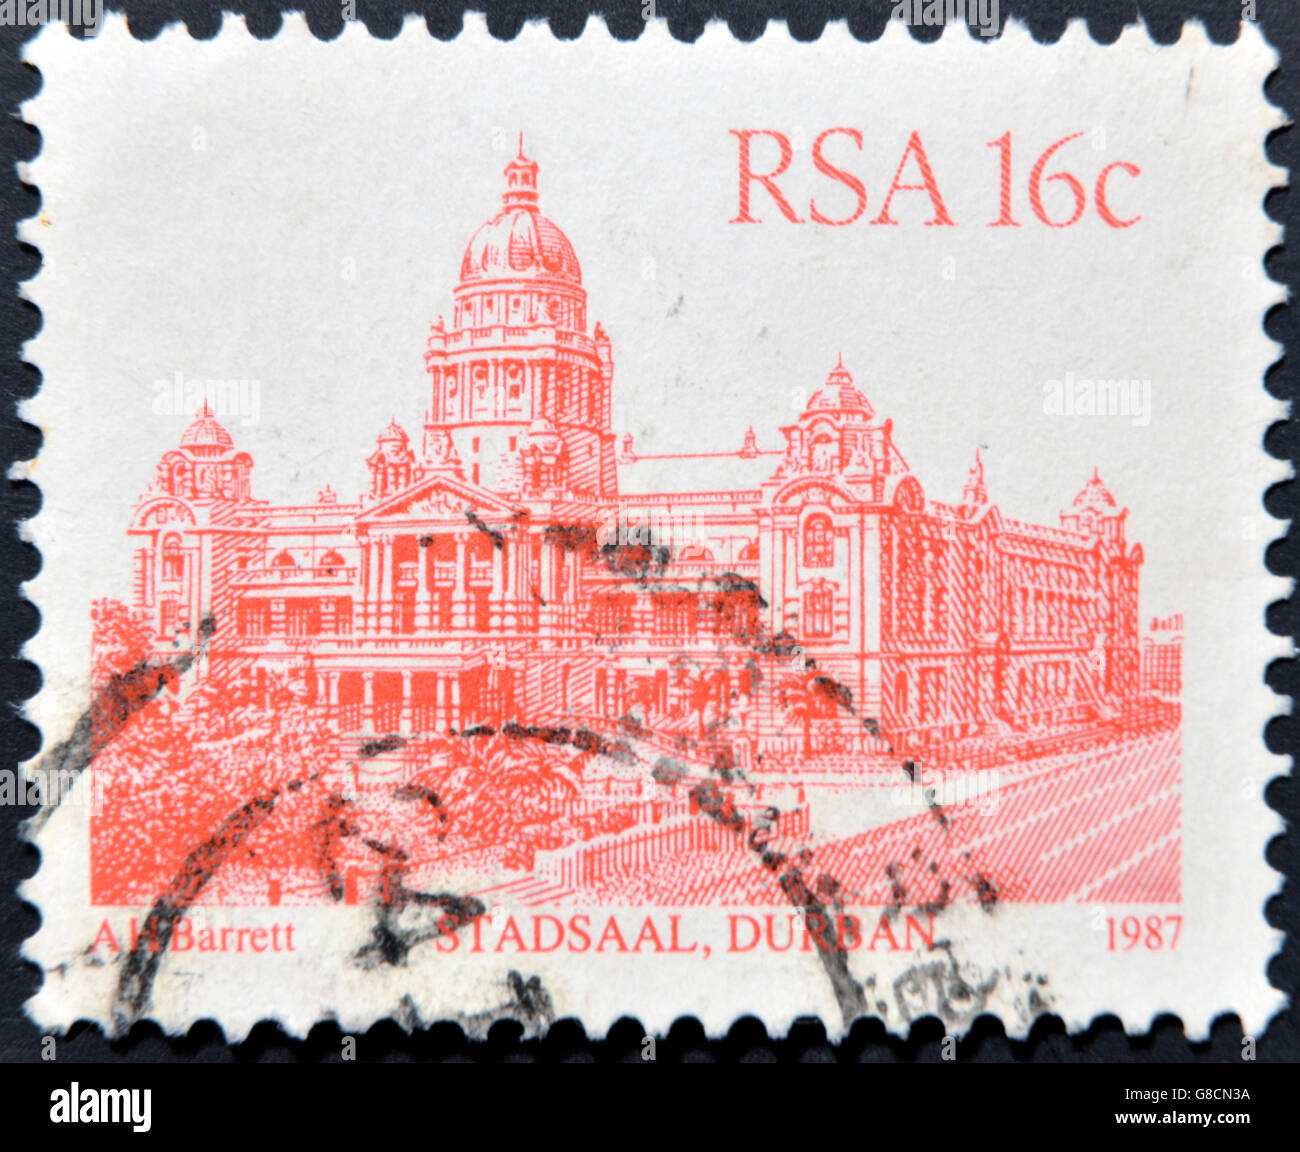 SOUTH AFRICA - CIRCA 1986: A stamp printed in South Africa shows image of the Stadsaal building in Durban, circa - Stock Image